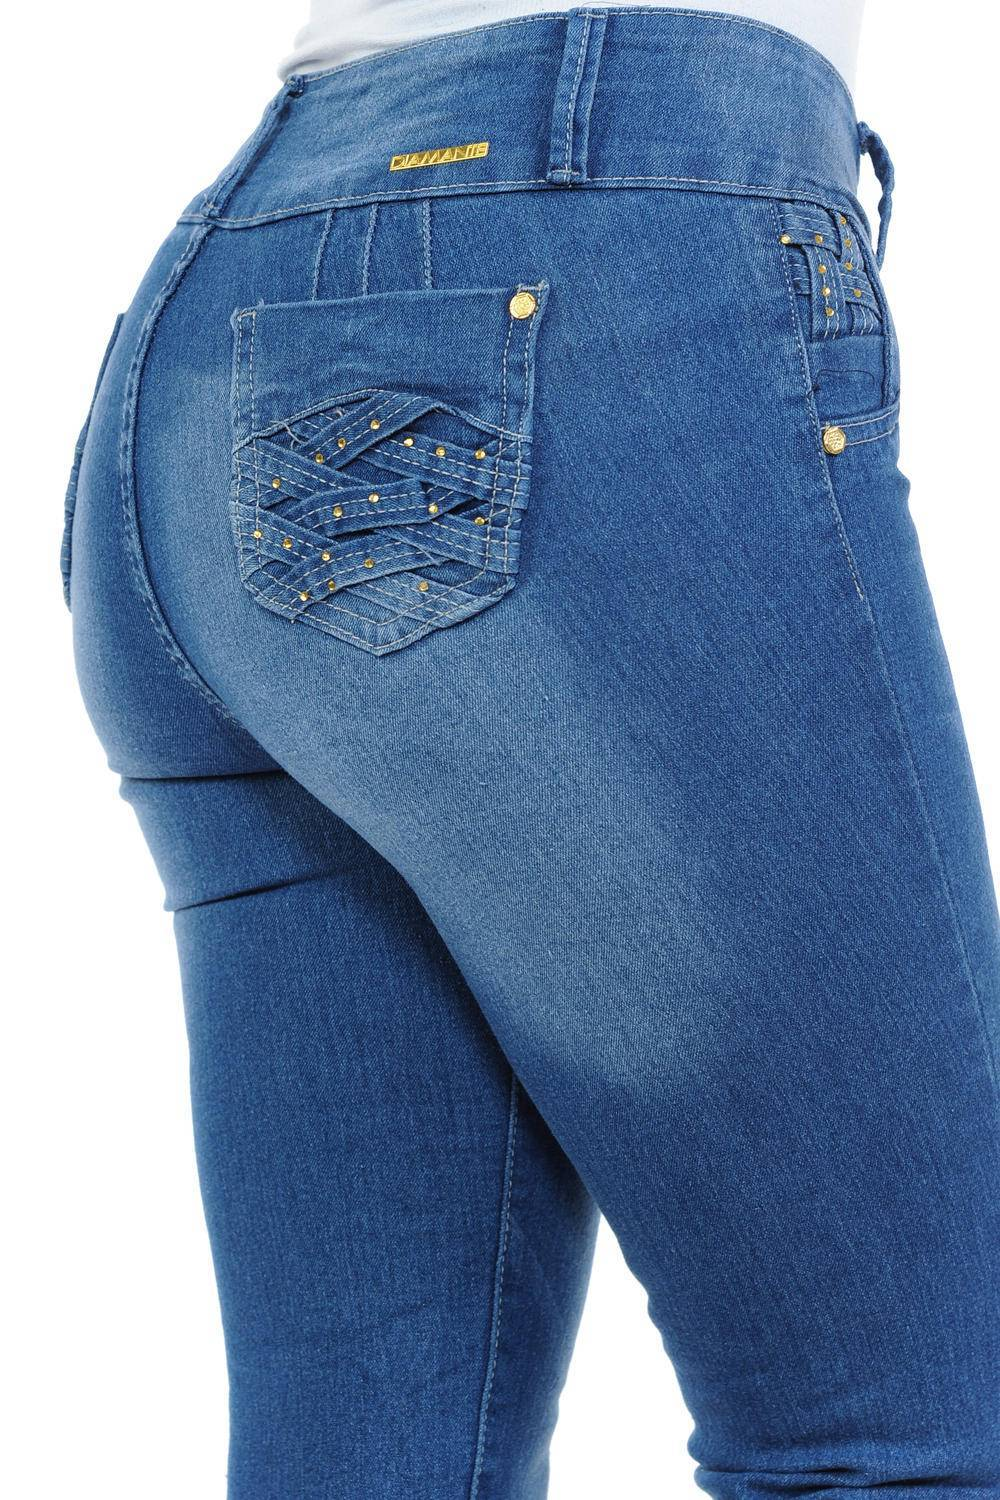 sports shoes cdf4a 90a26 Diamante Women's Jeans · Push Up · Style G522